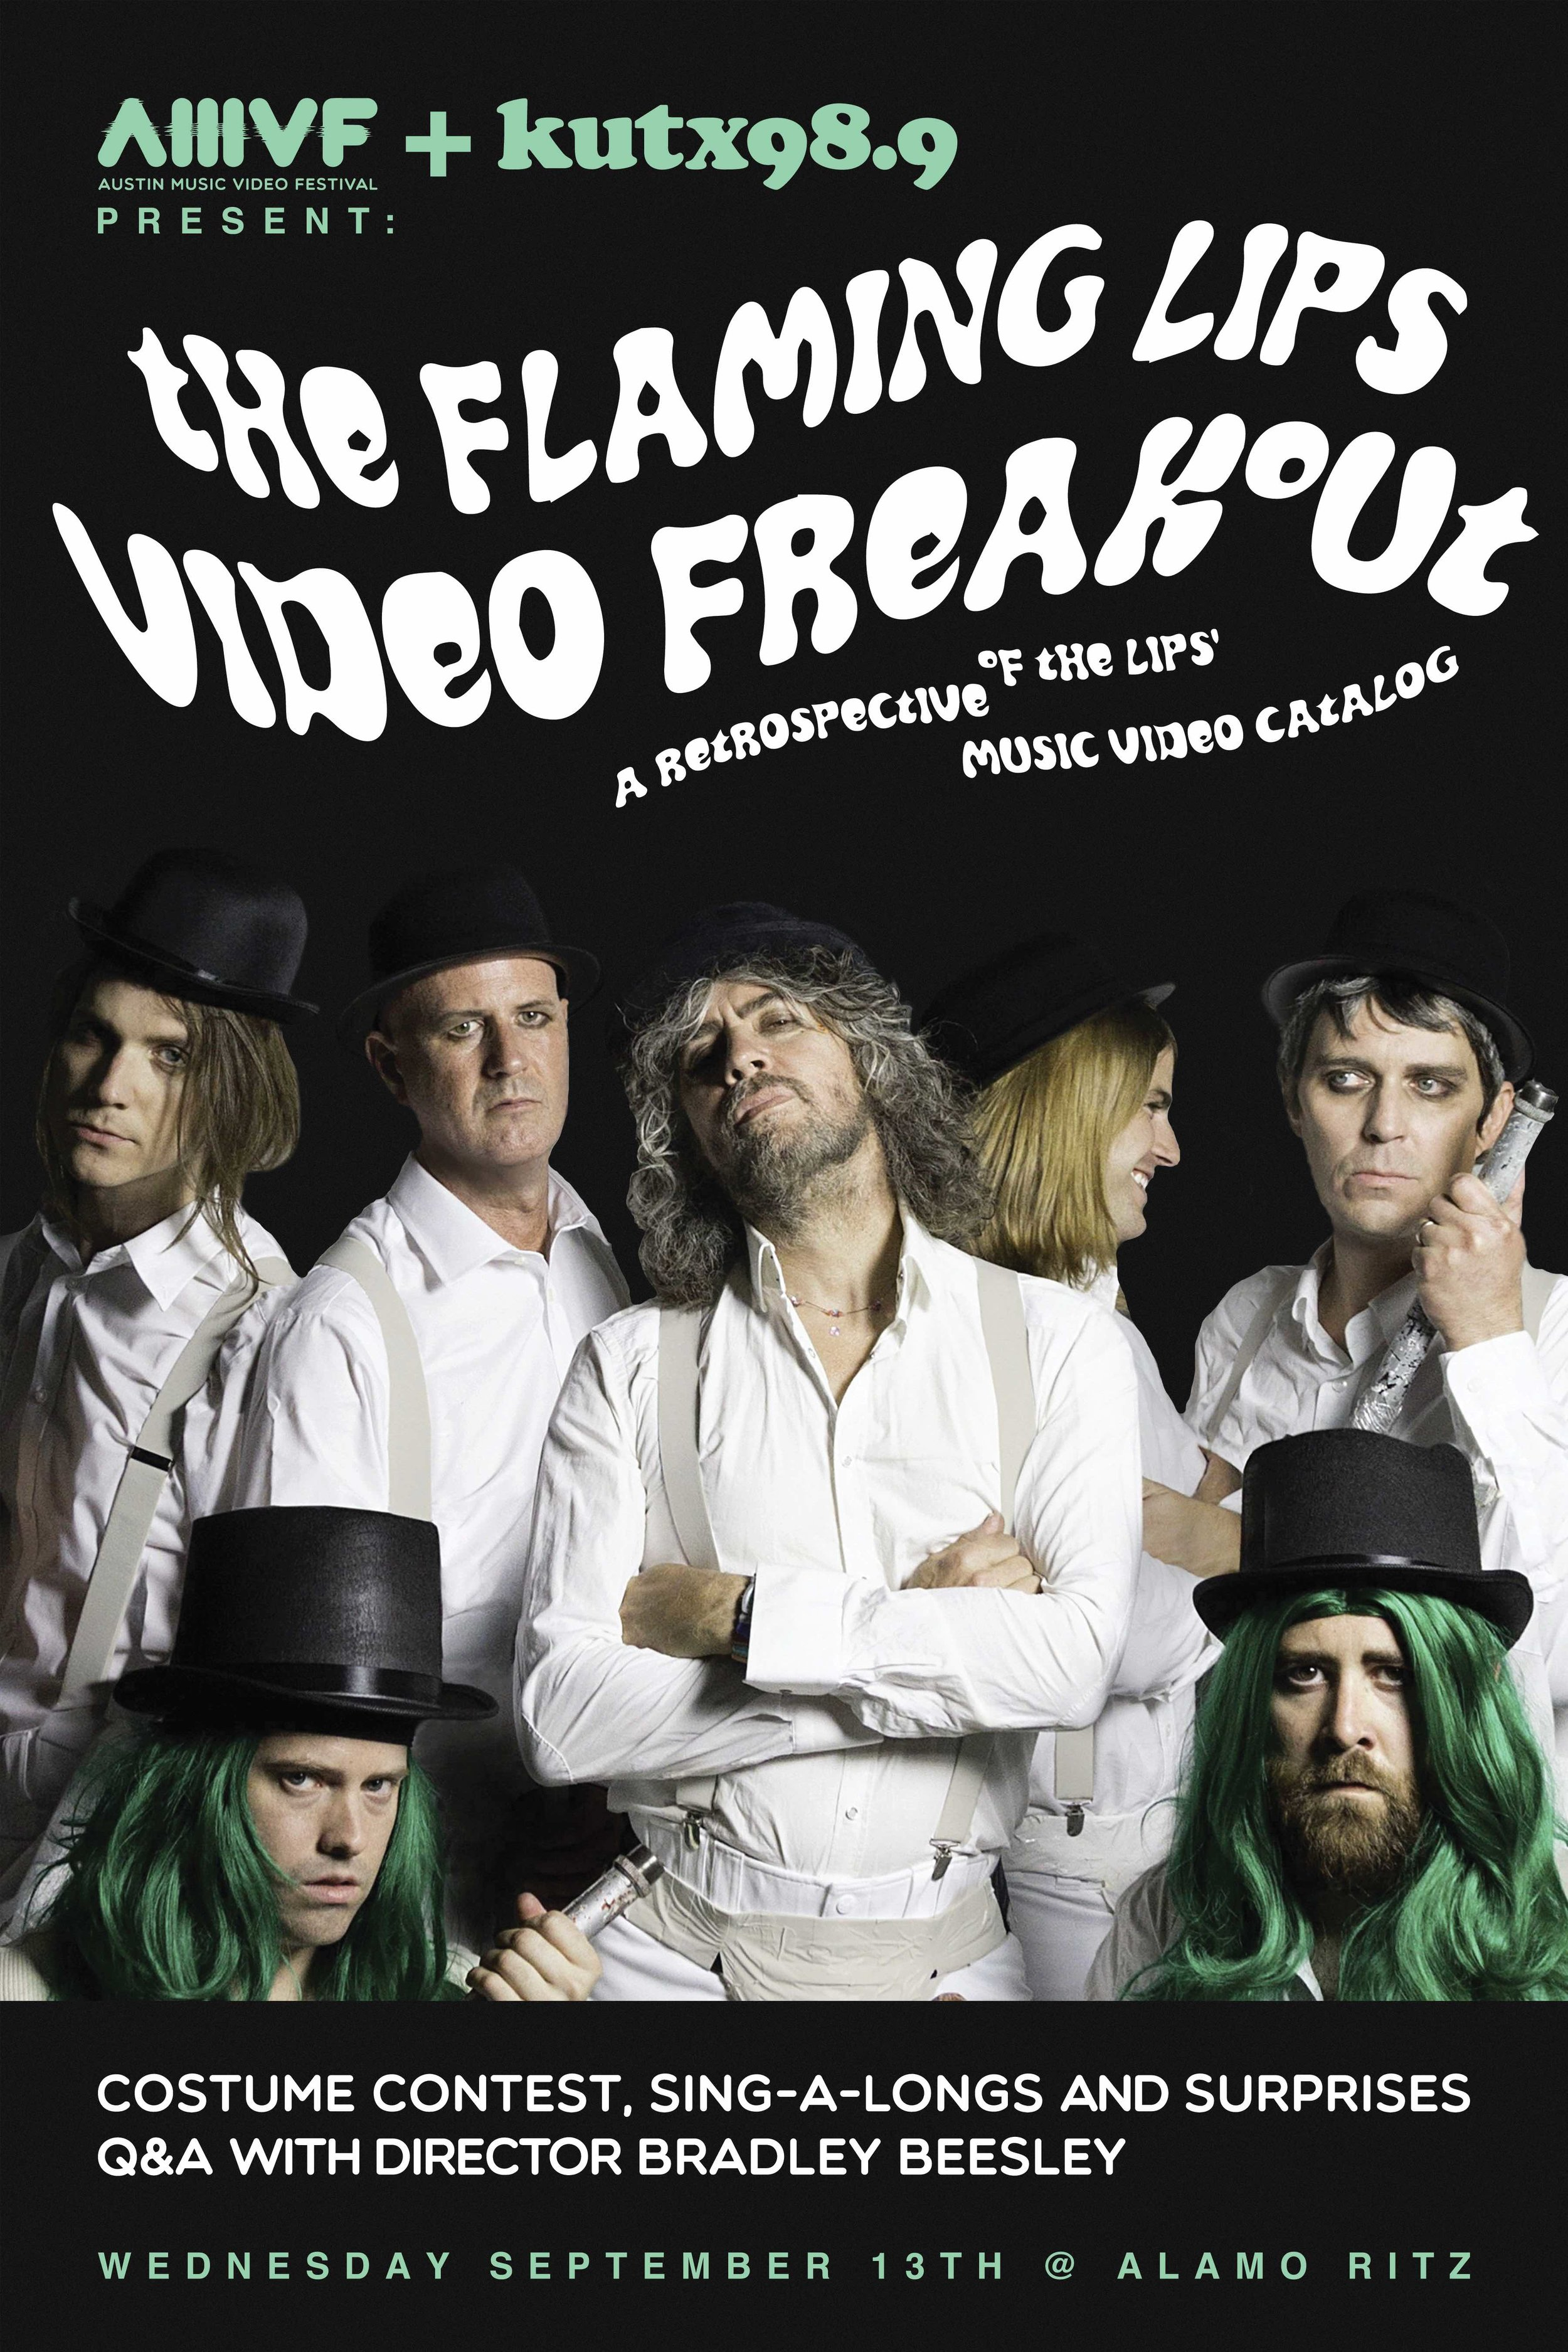 FLAMING LIPS VIDEO FREAKOUT